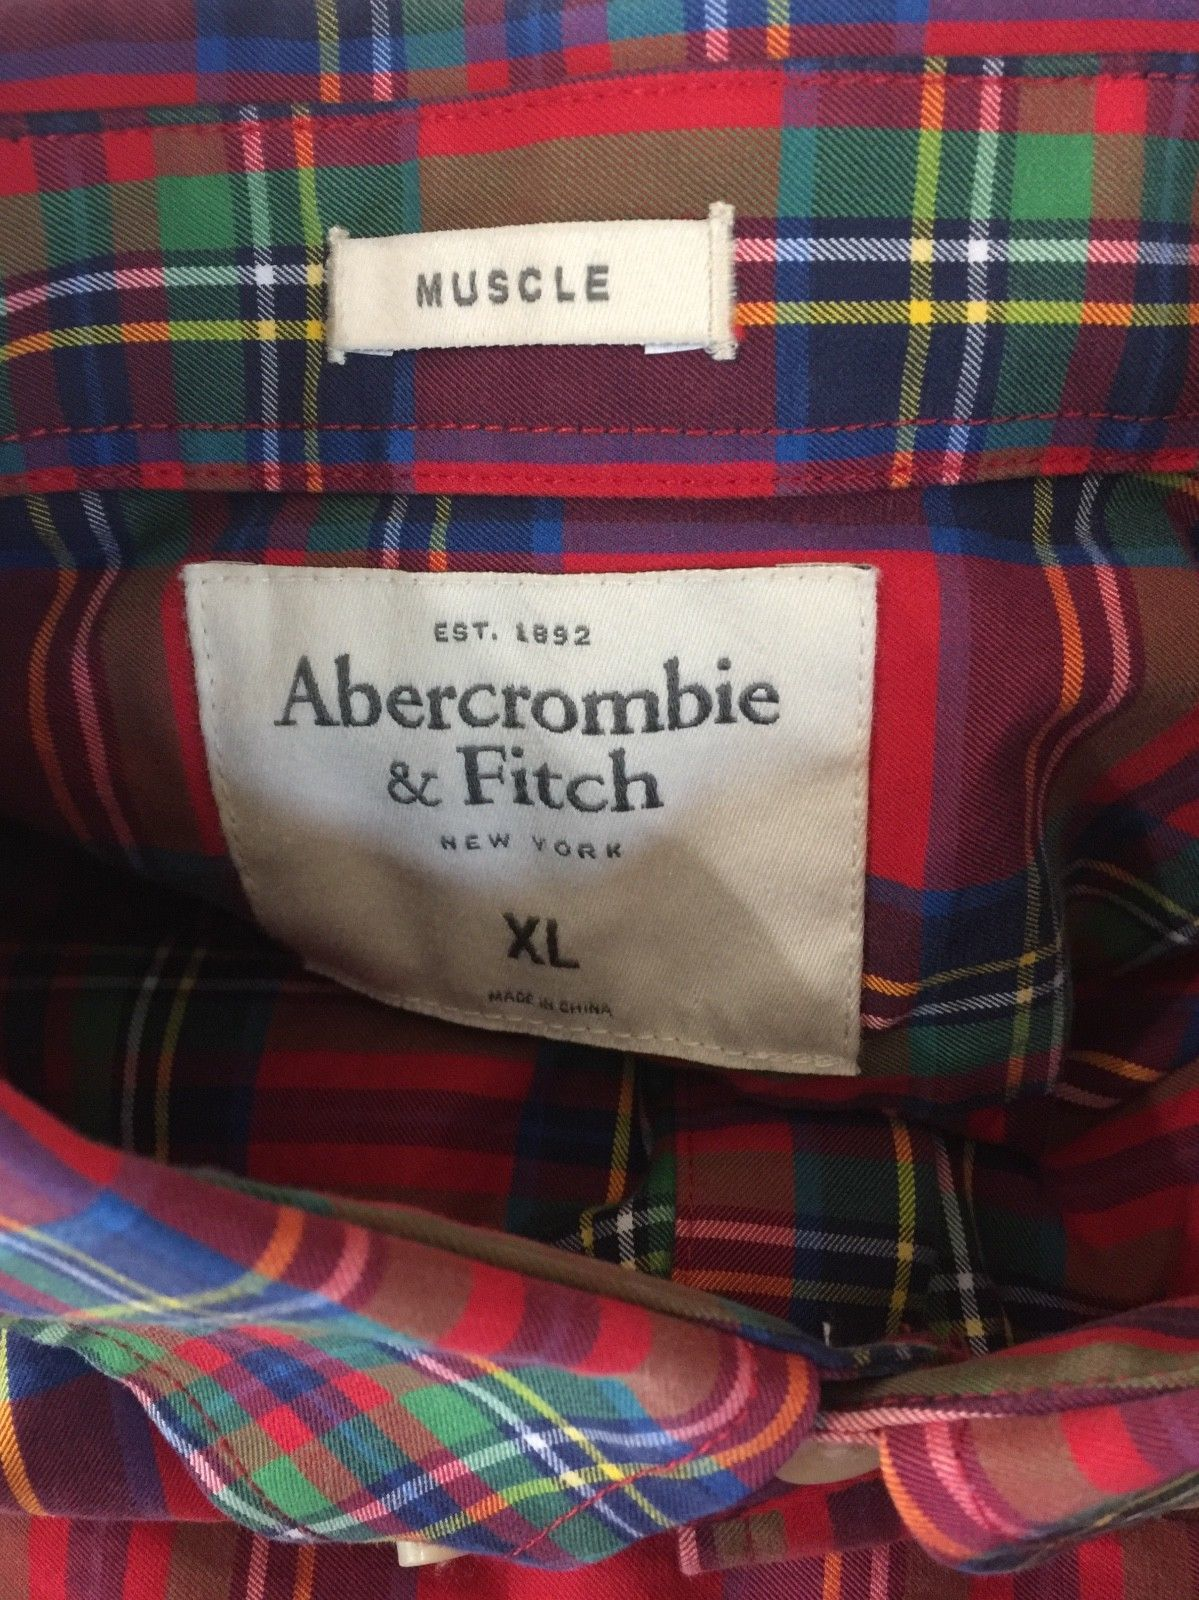 Abercrombie & Fitch Muscle Shirt Long Sleeve Button Down Red Plaid Men's XL